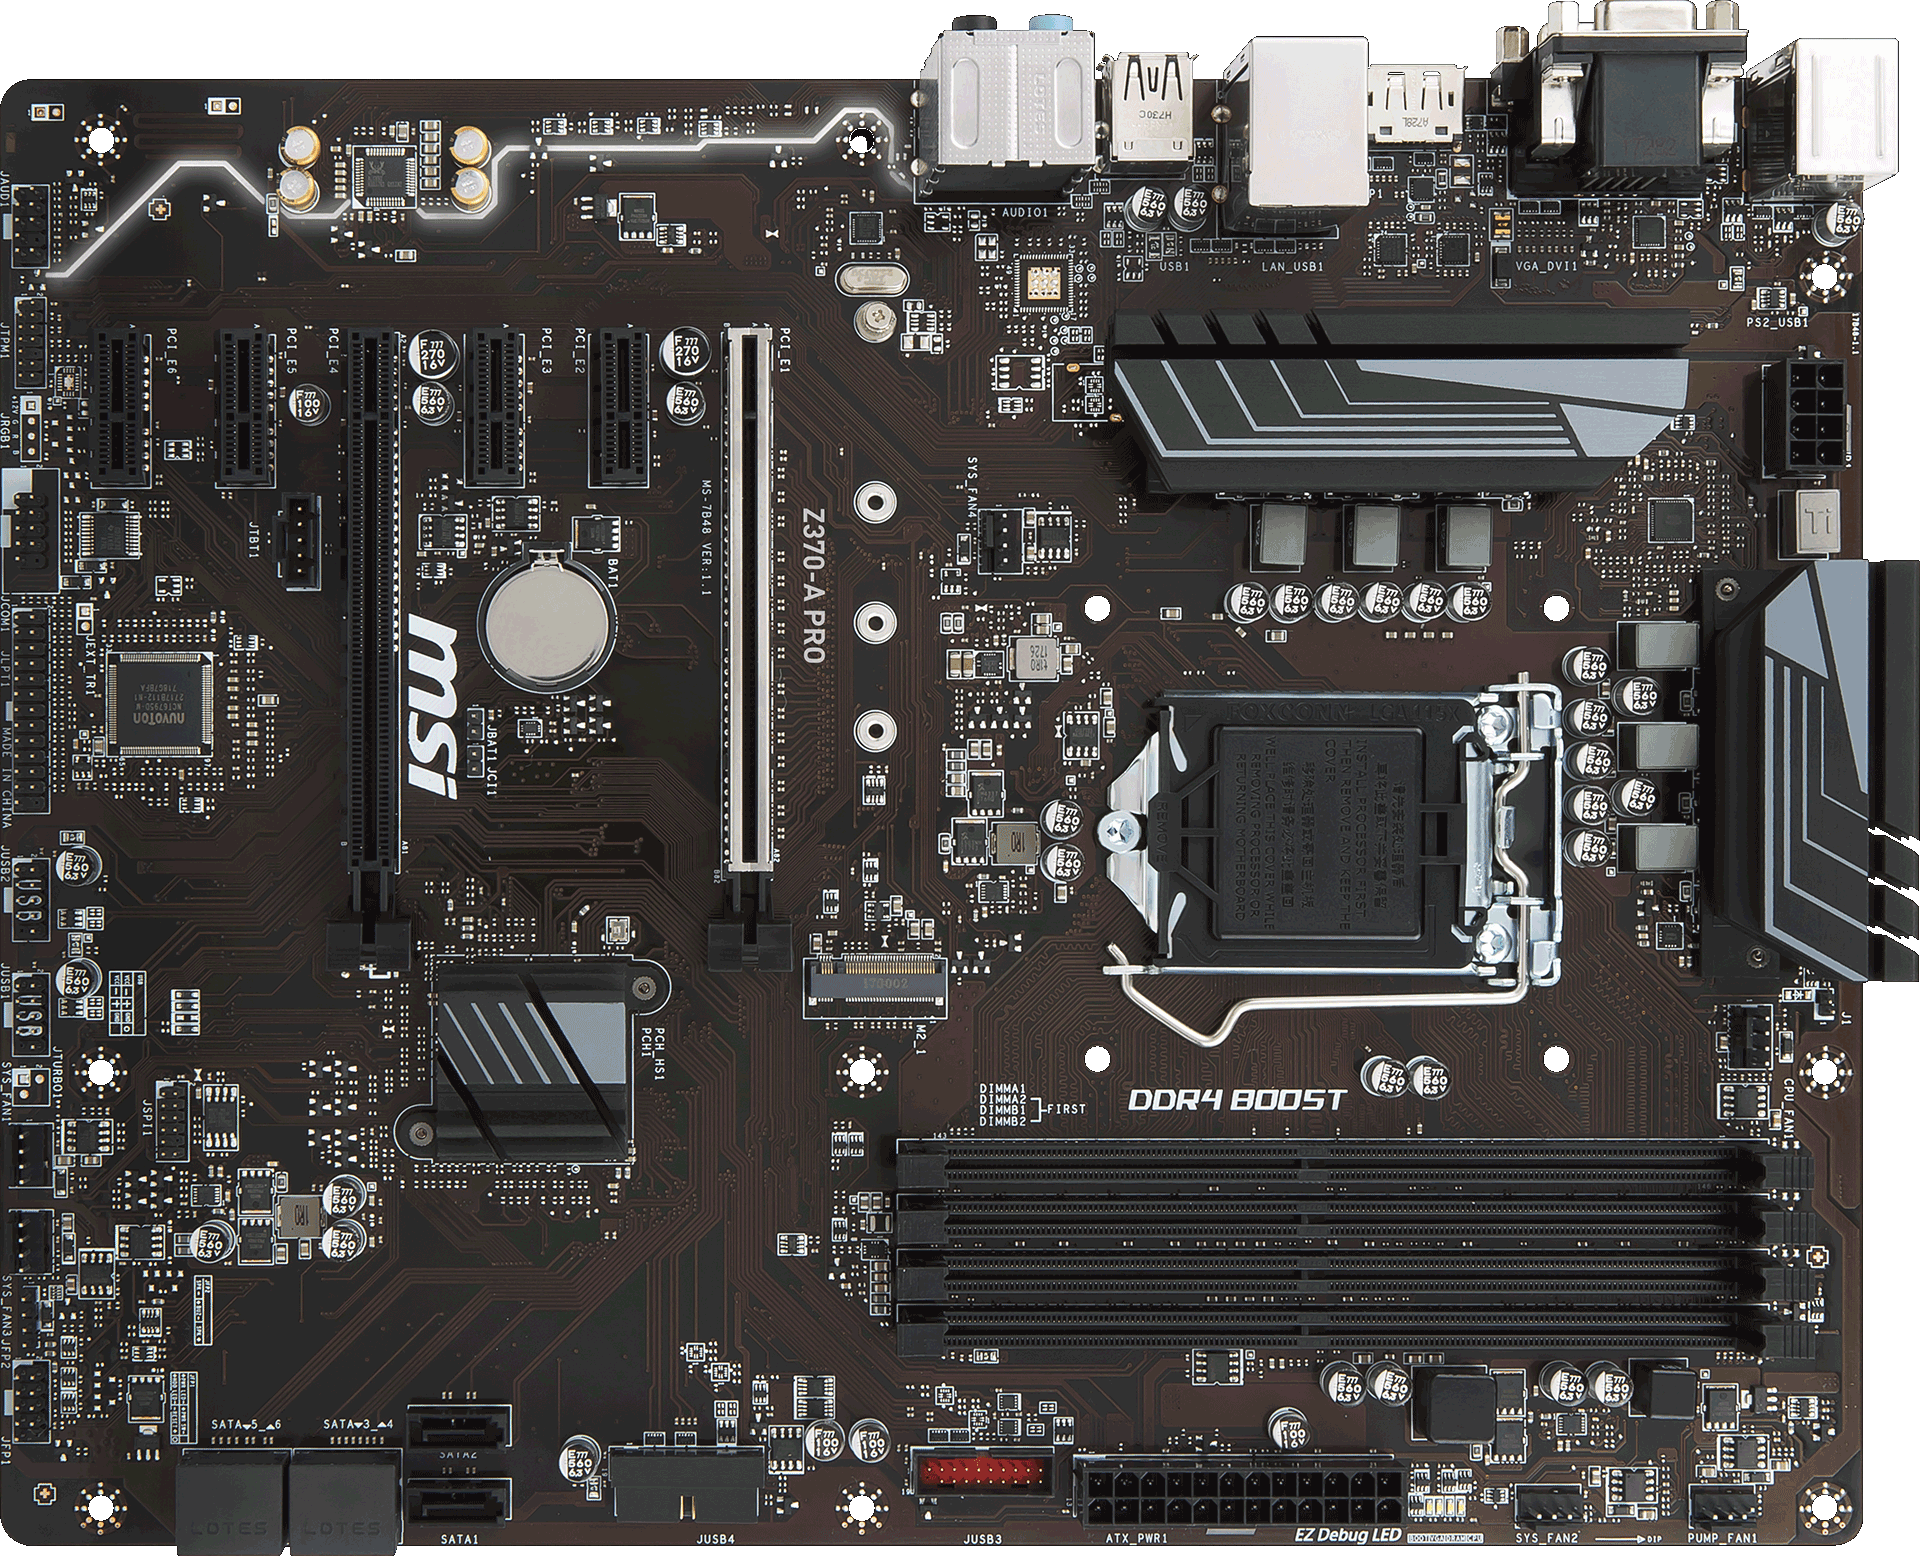 Z370-A PRO | Motherboard - The world leader in motherboard design